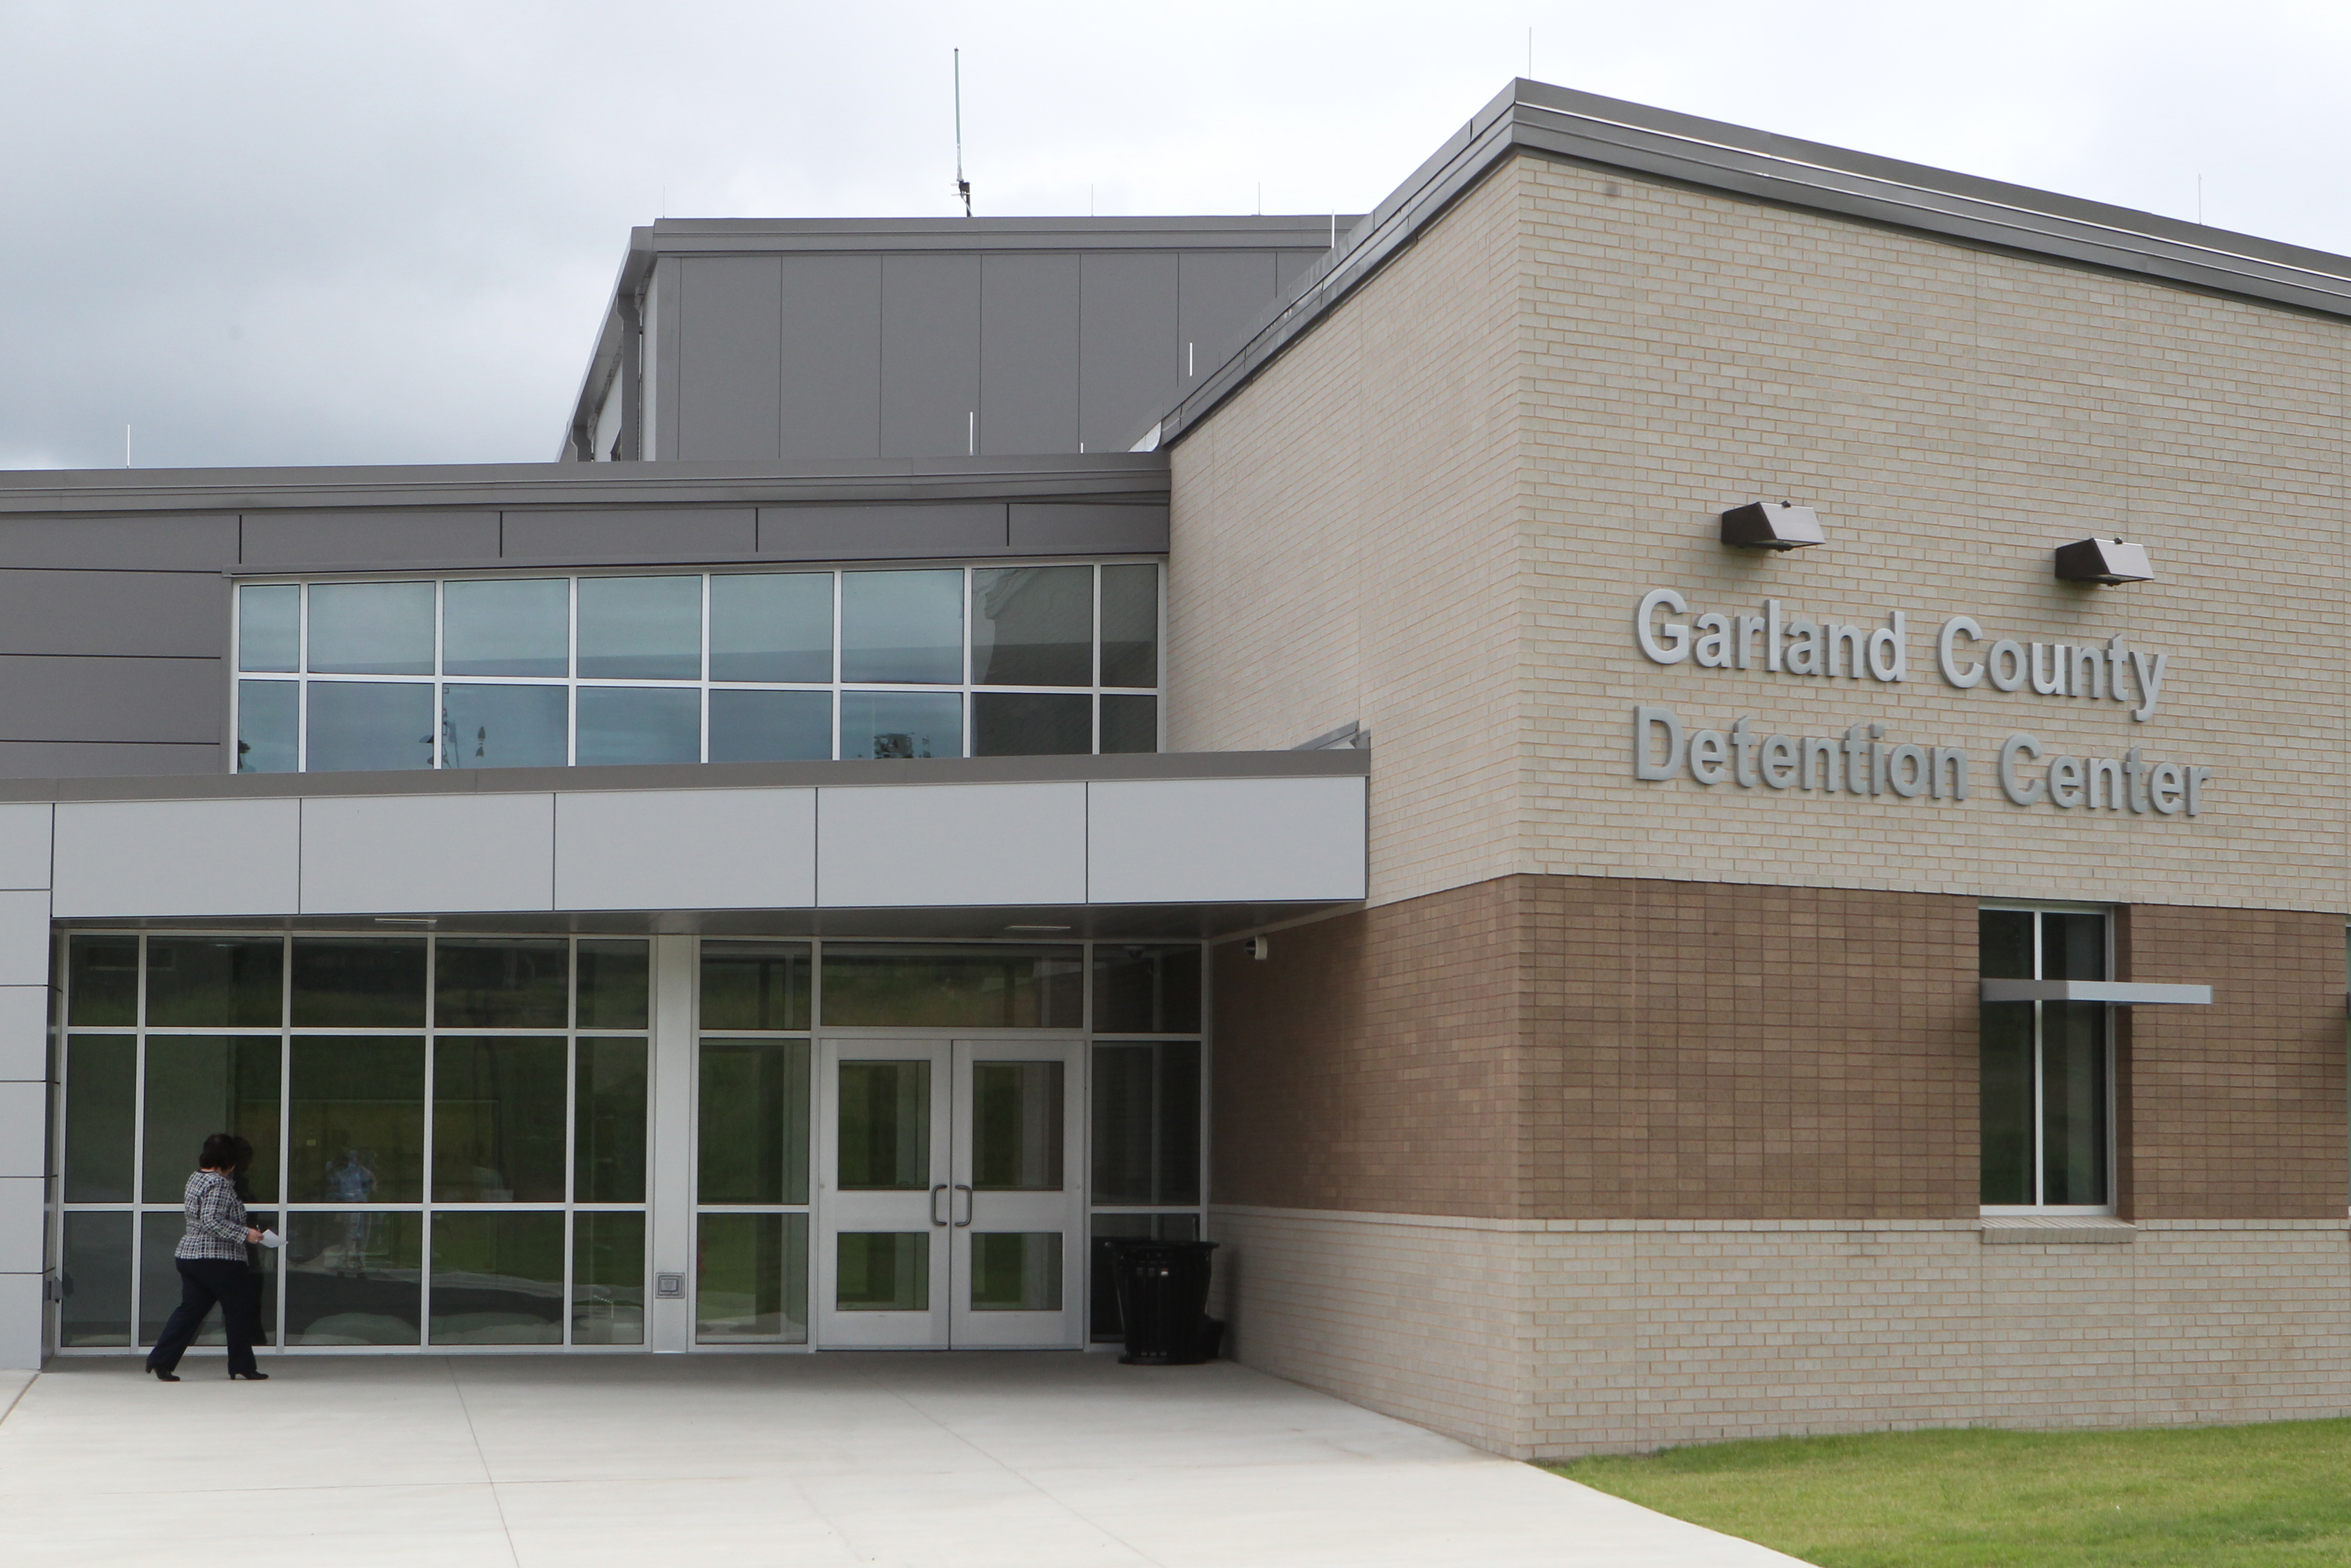 One-for-one policy remains in effect at jail